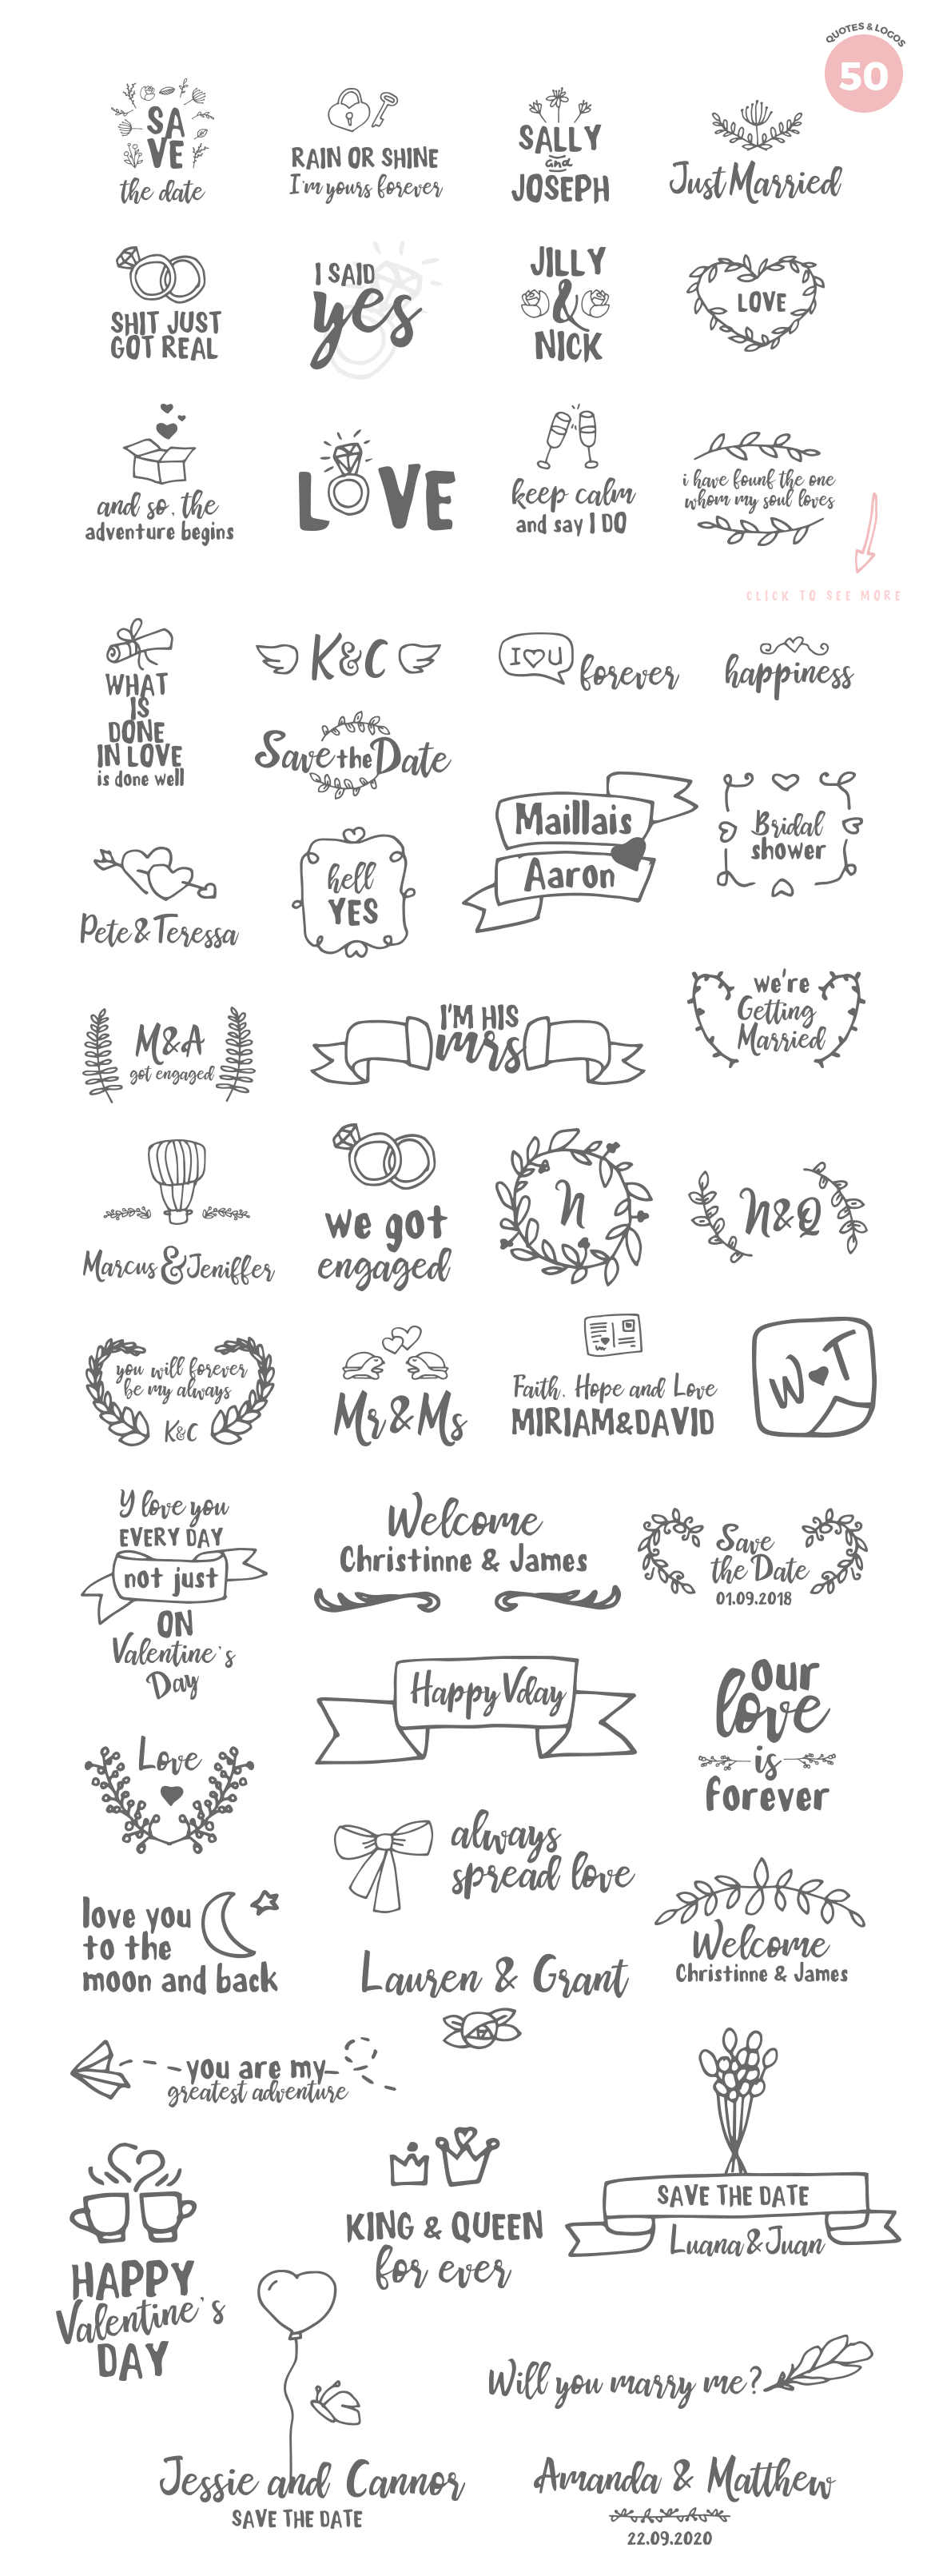 Mrs Maillias Duo Font & Doodles example image 3